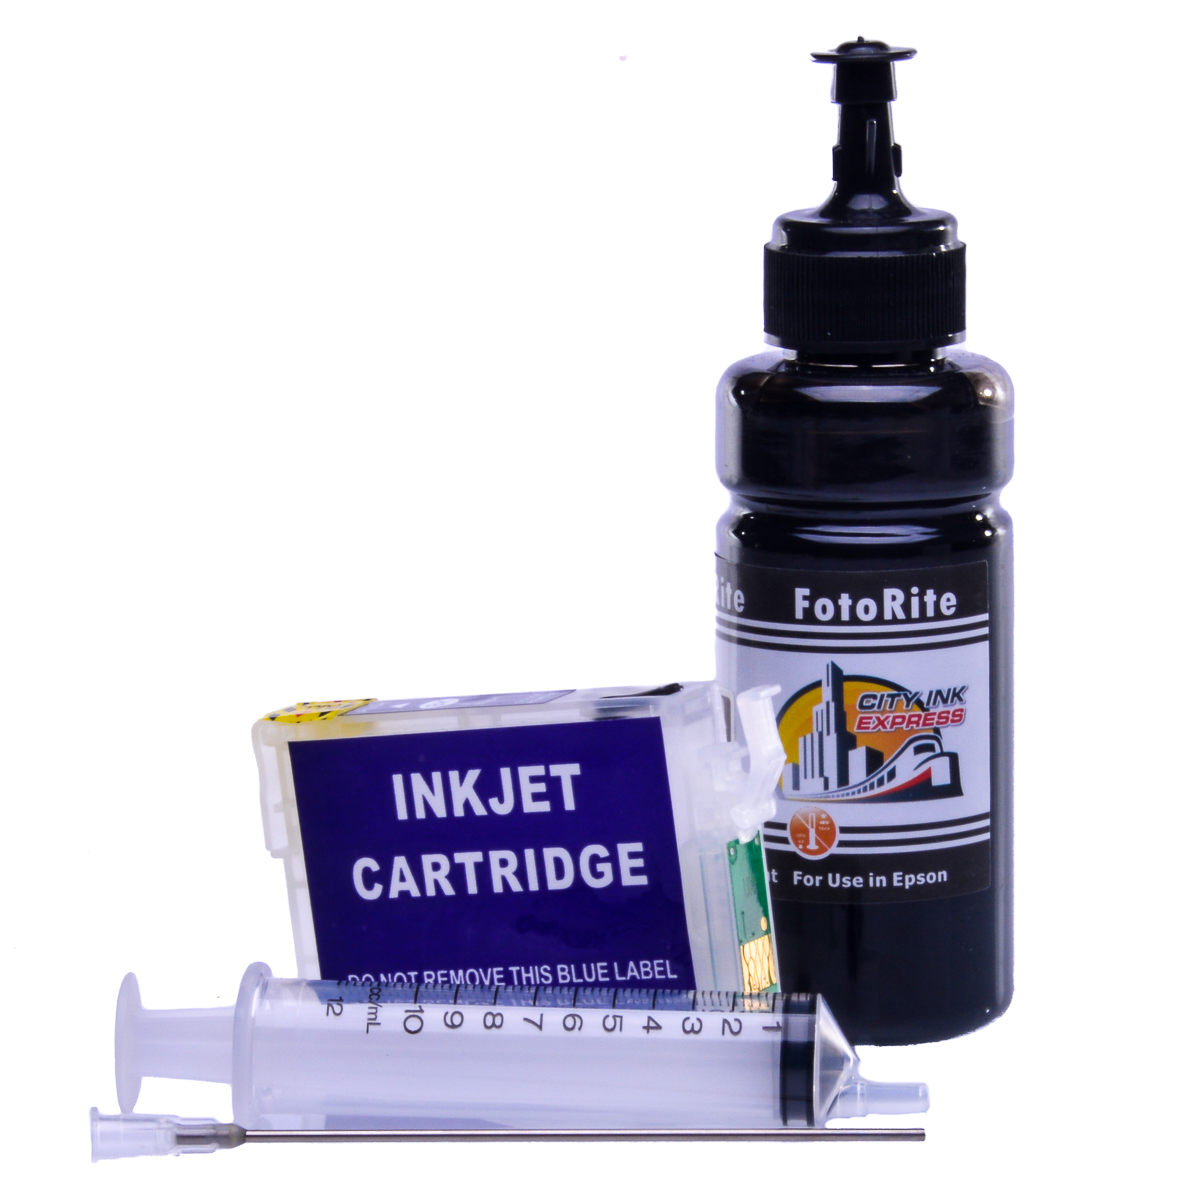 Refillable pigment Cheap printer cartridges for Epson Stylus BX630FW C13T13014010 T1301 Black